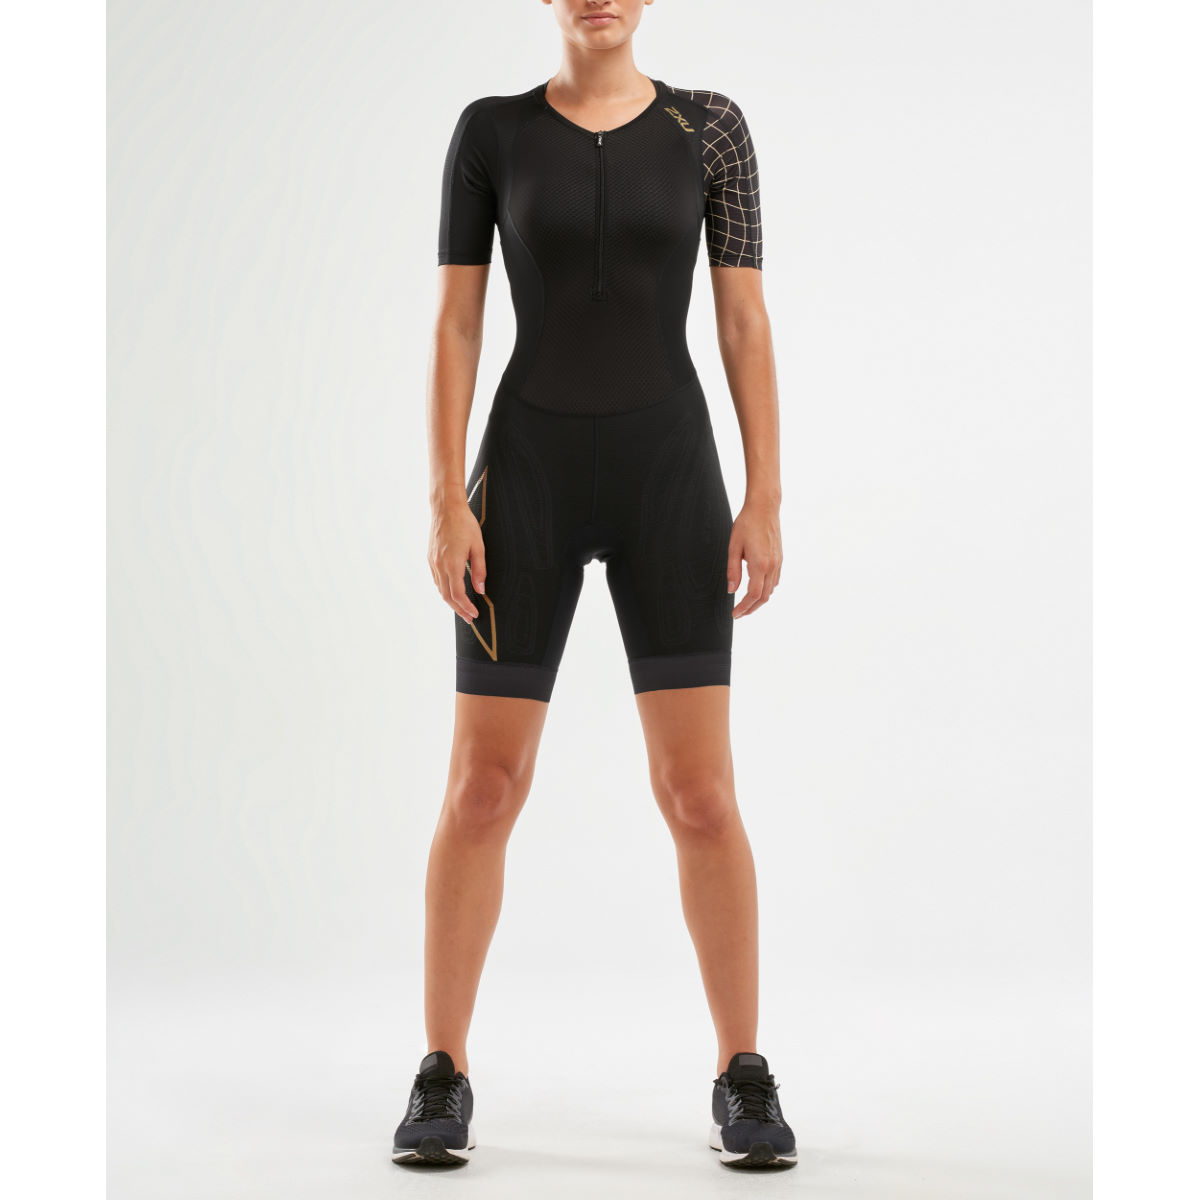 2Xu 2XU Womens Compression Sleeved Trisuit   Tri Suits